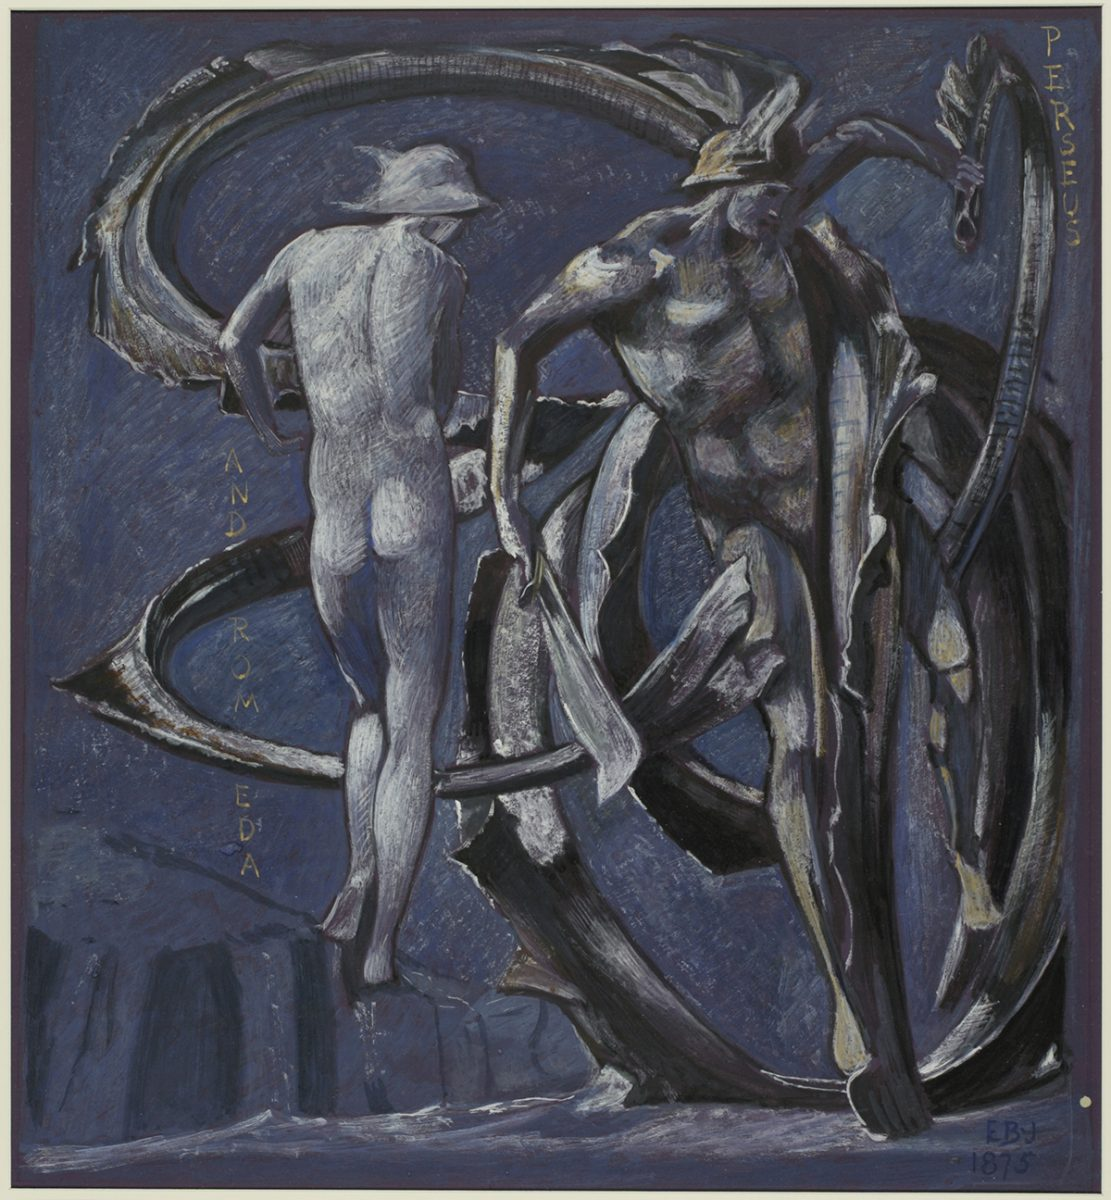 Perseus and Andromeda, study for The Doom Fulfilled 1875 by Sir Edward Burne-Jones